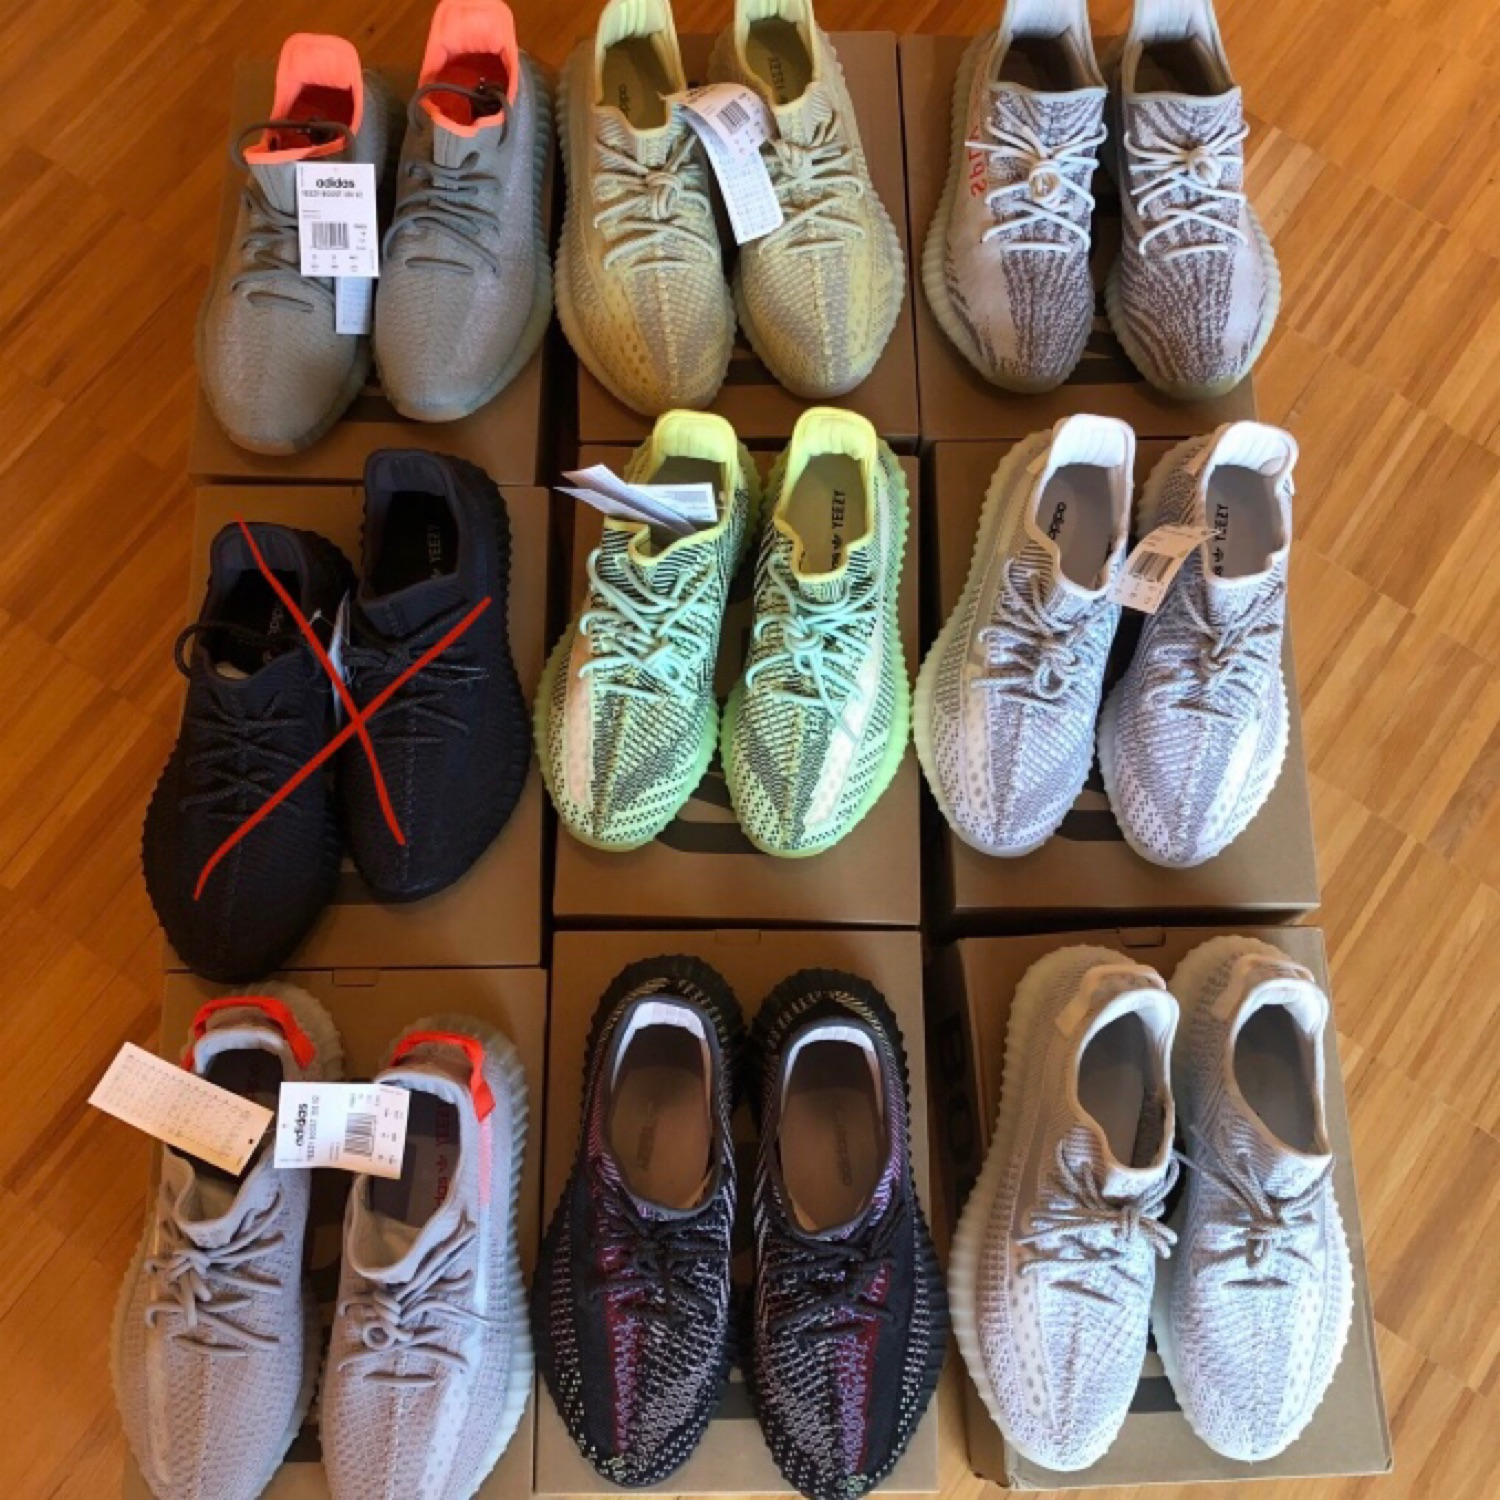 Adidas Yeezy Boost 350 V2 Collection +380 For Free